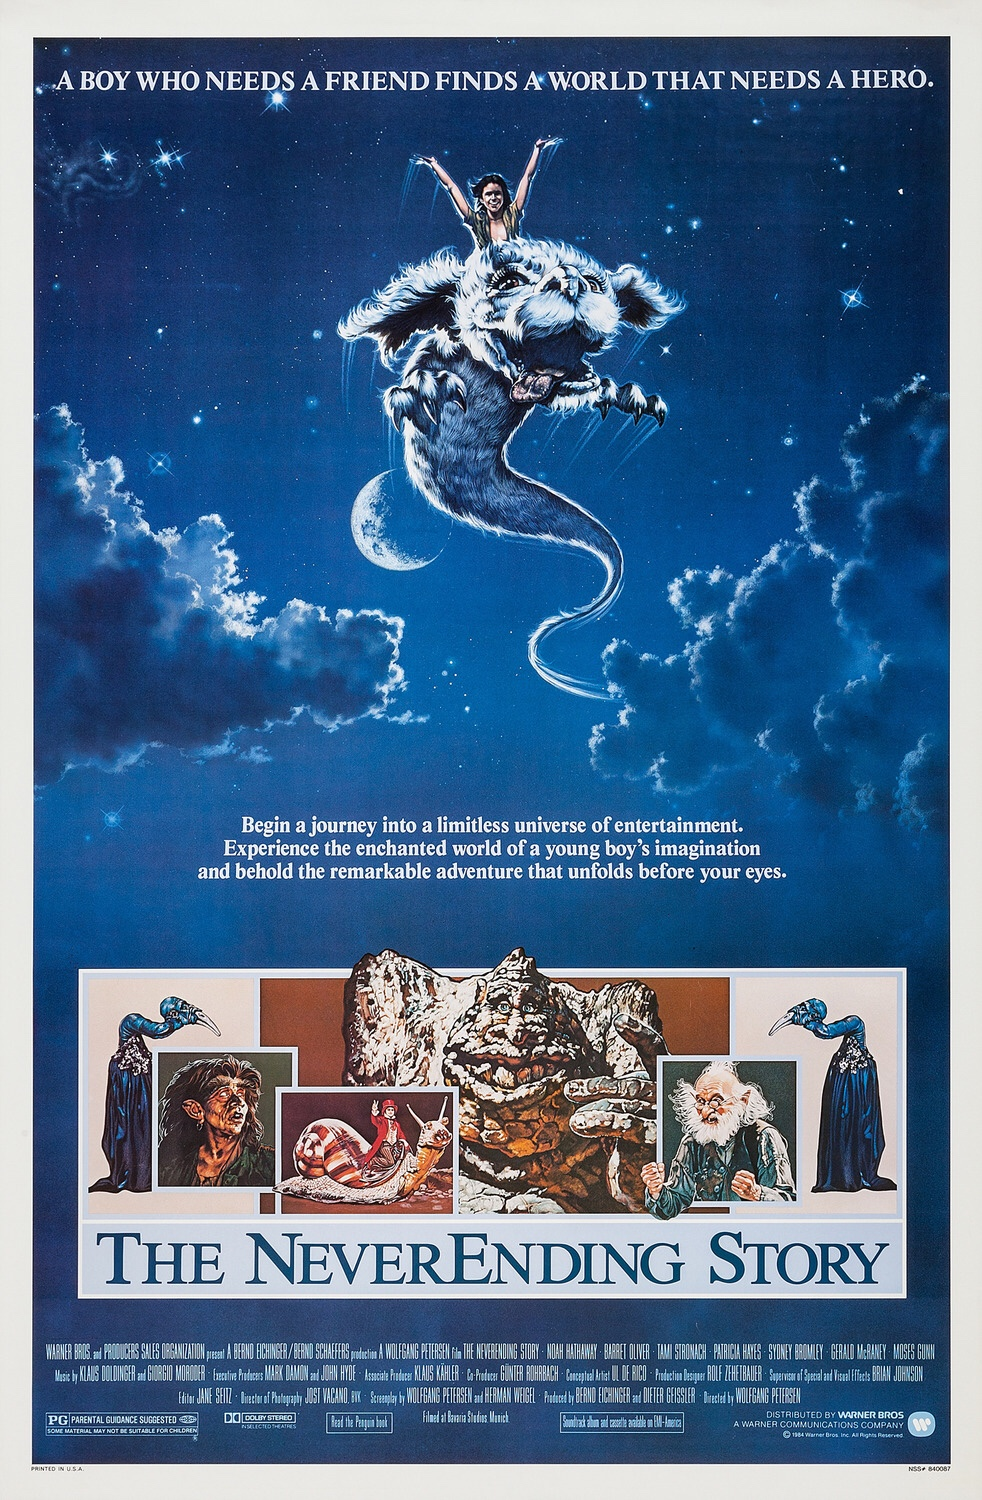 Warner Bros. 1984 original one sheet movie poster. Illustrated by Richard Hescox.